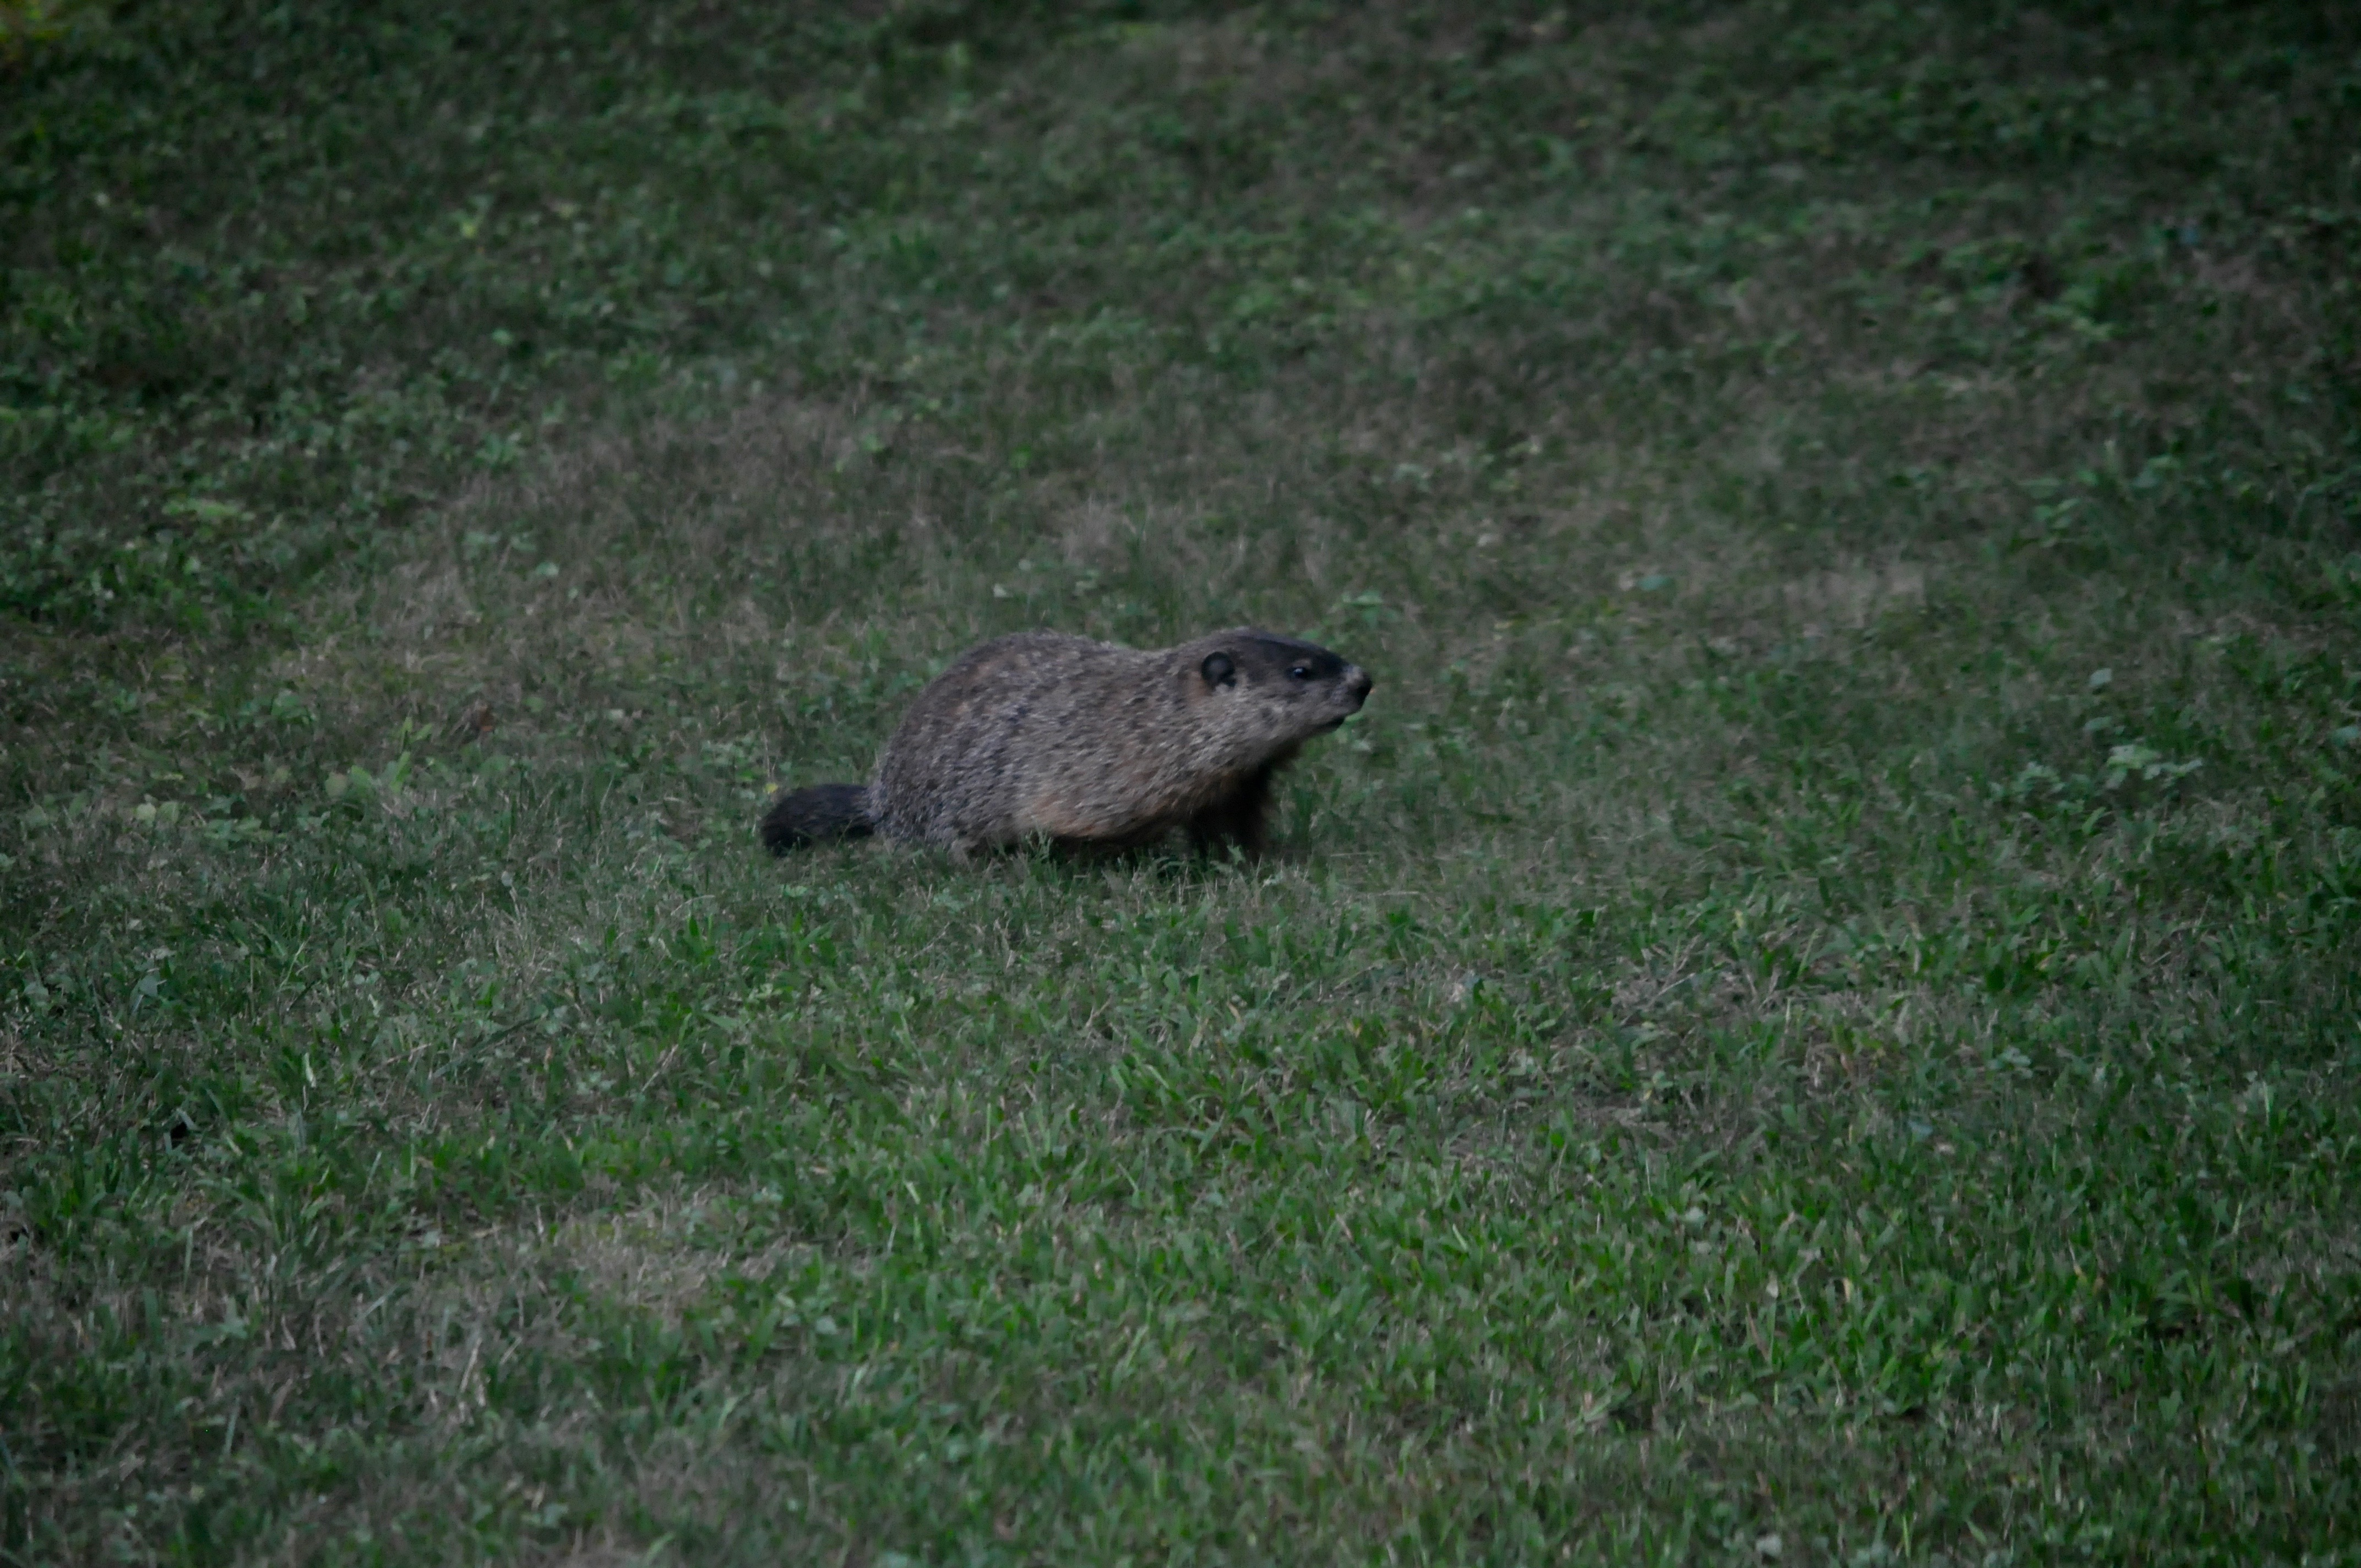 What is this?  Is it a gopher?